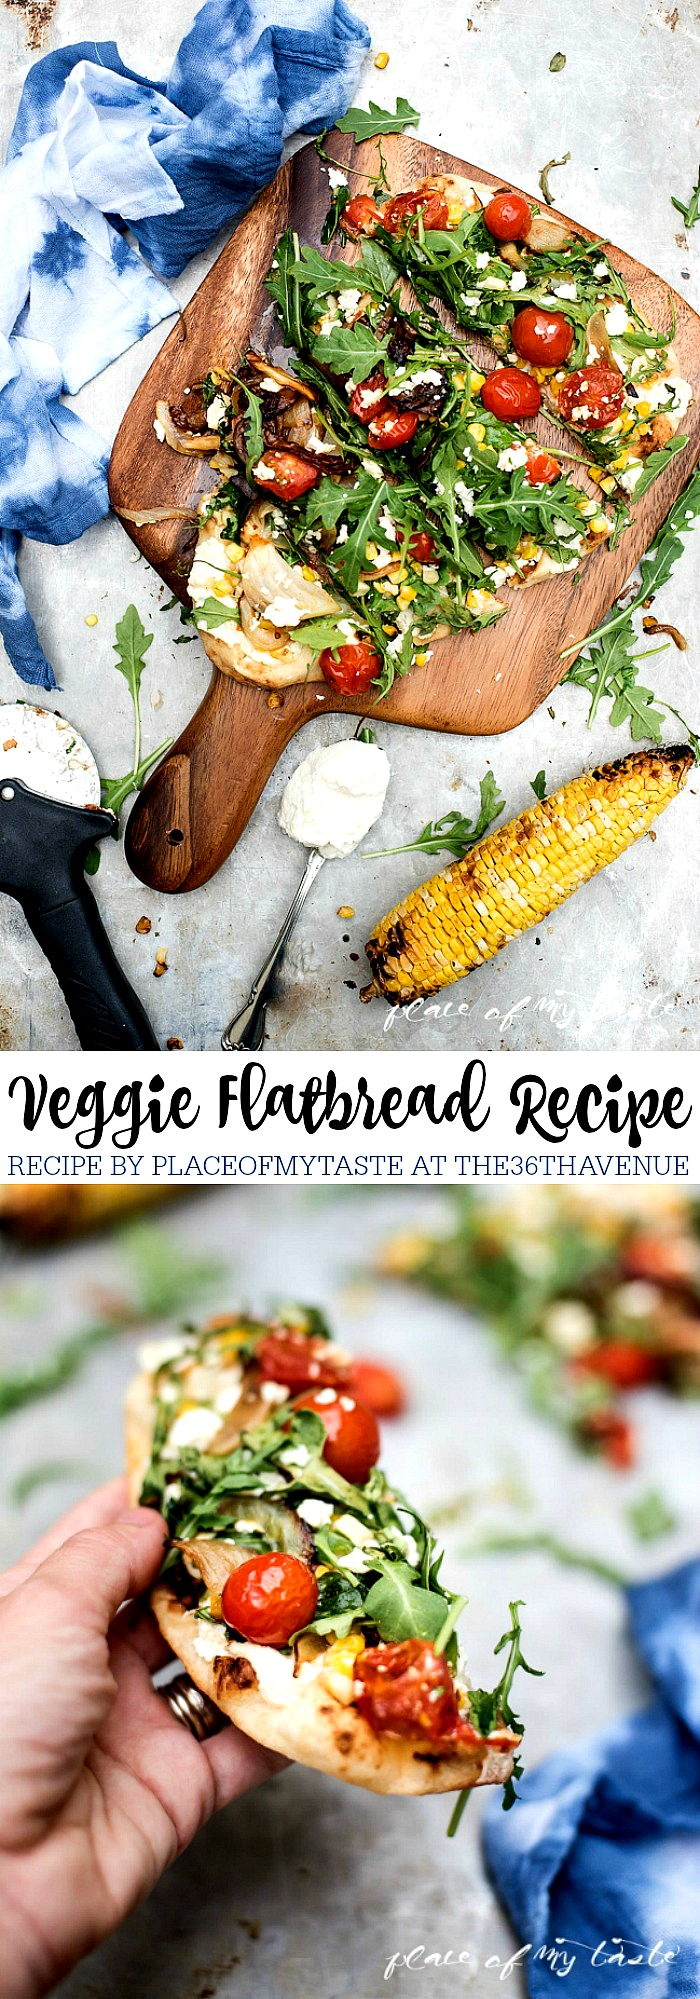 Healthy Recipes - Veggie Homemade Flatbread. Super easy and delicious main dish or appetizer.